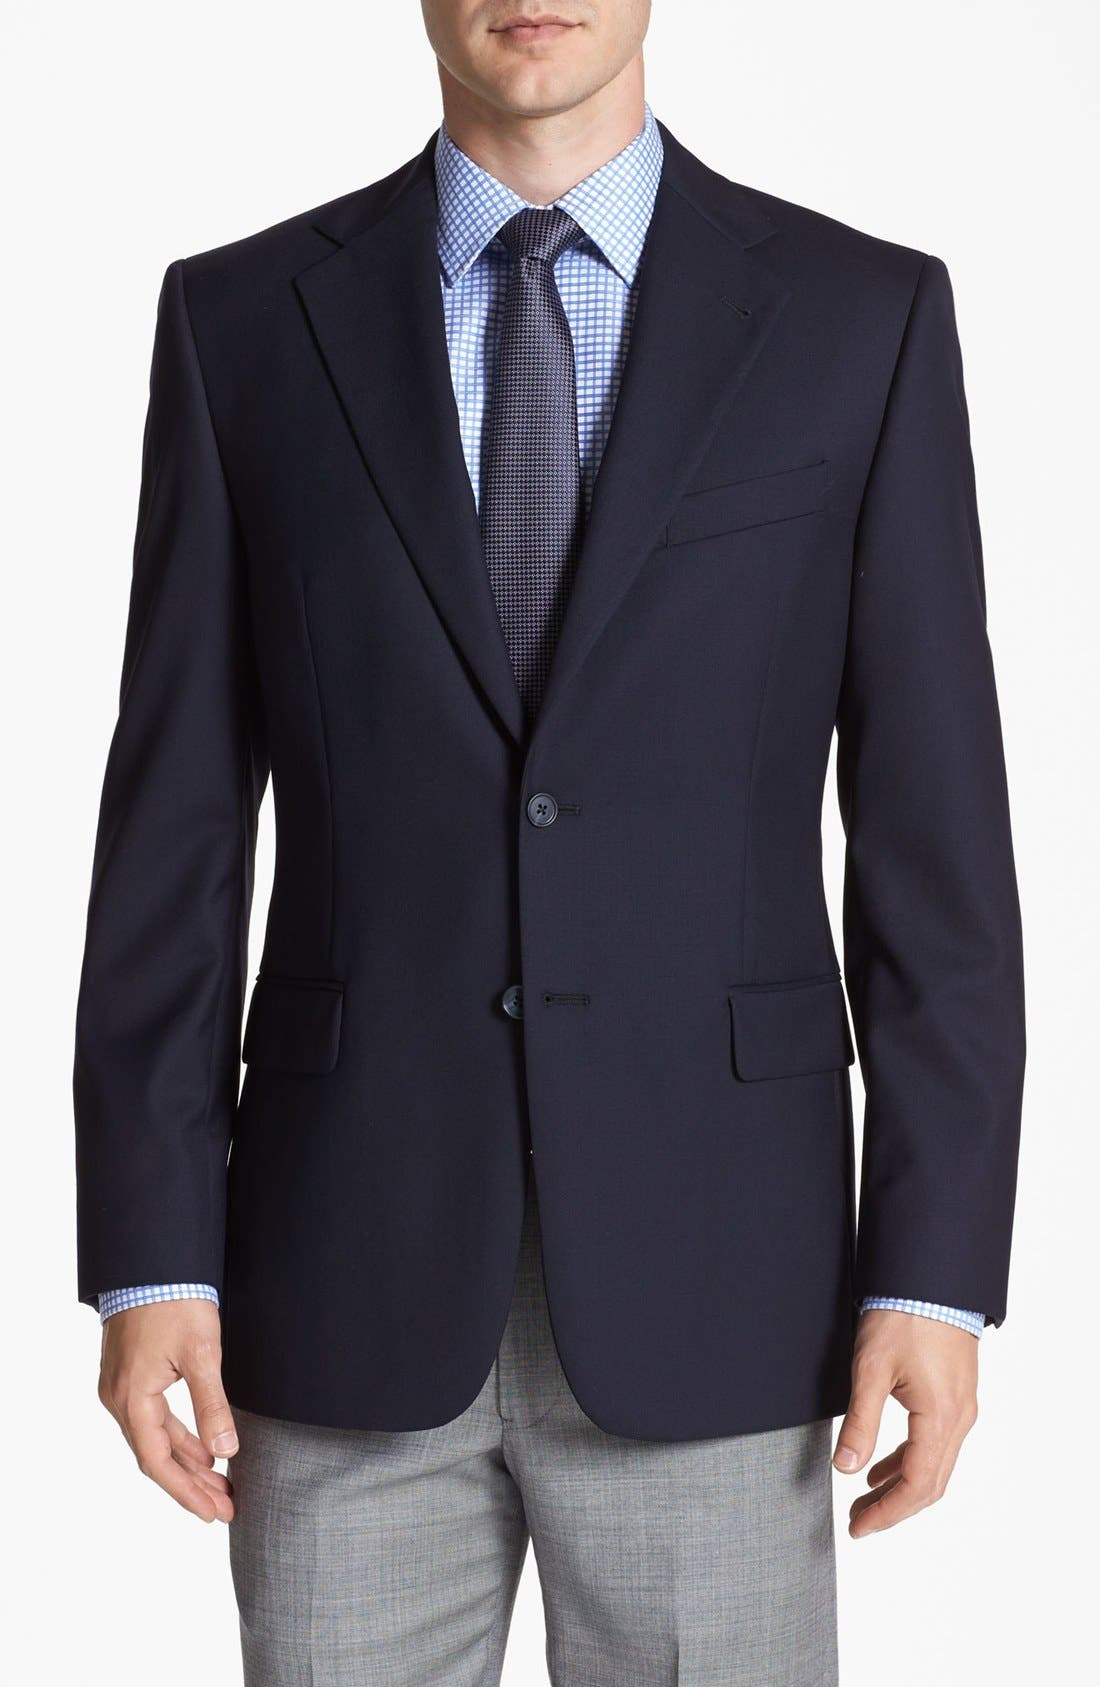 Alternate Image 1 Selected - Joseph Abboud Solid Wool Blazer